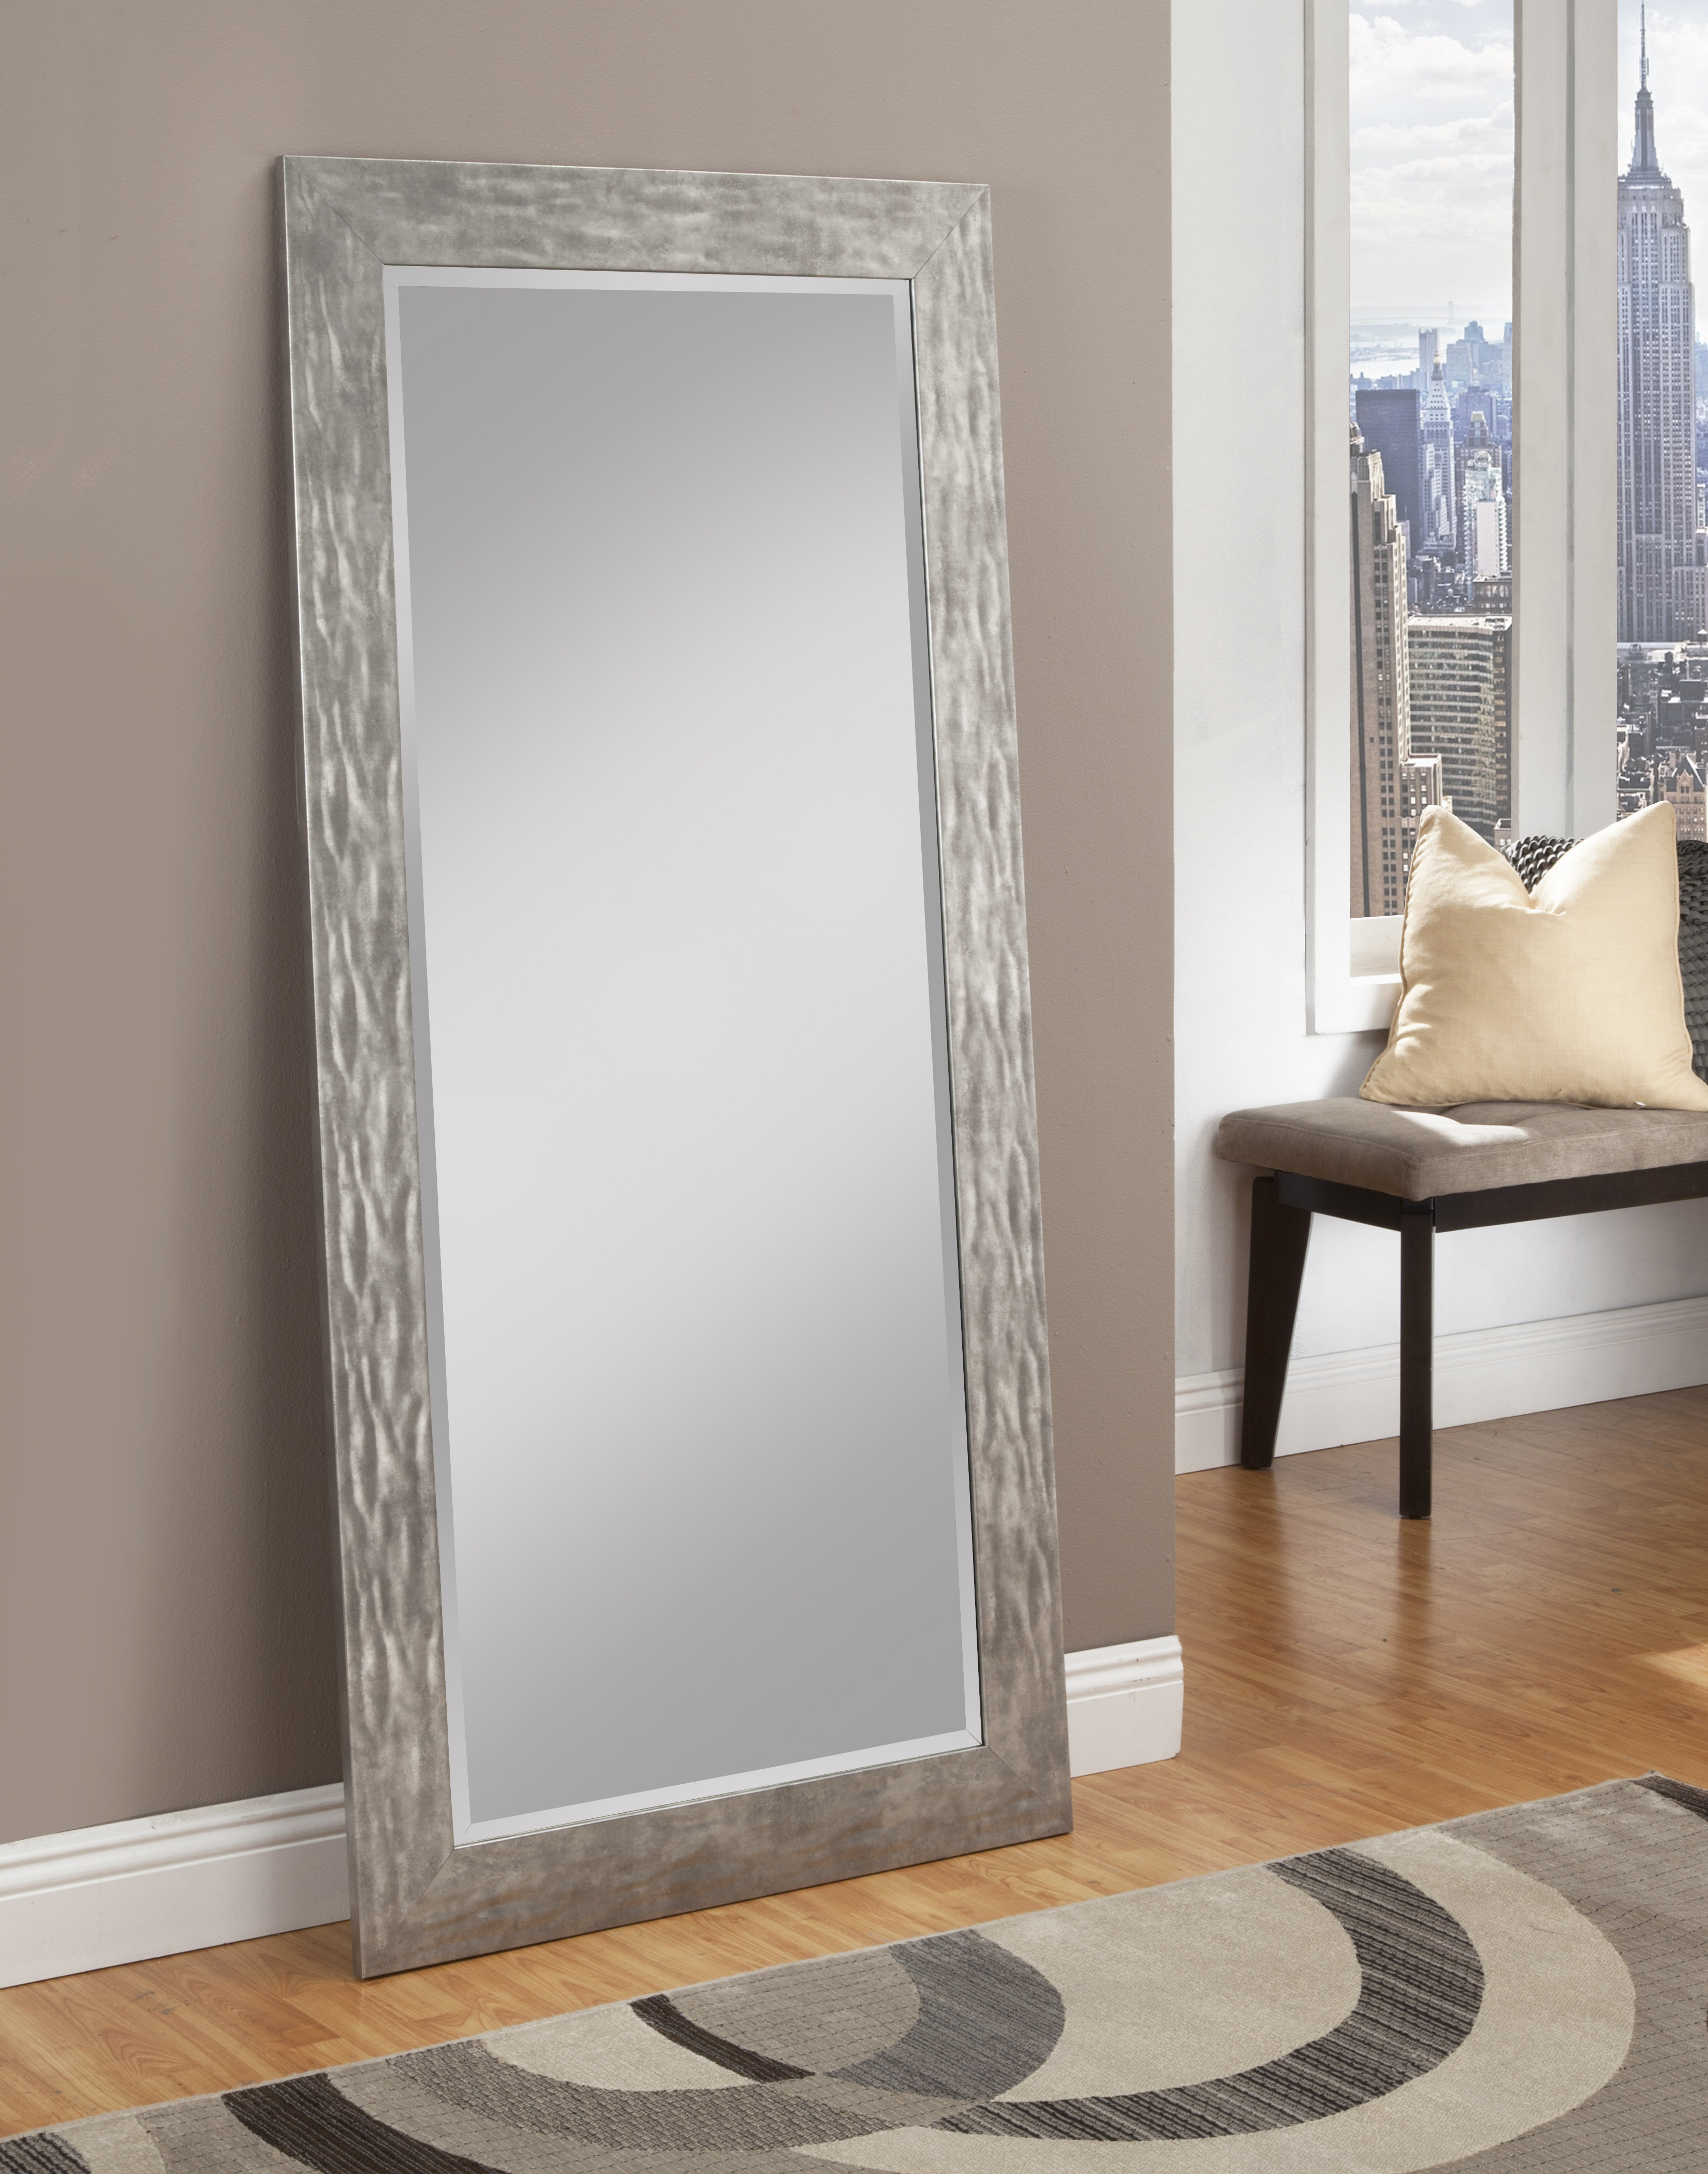 Farmhouse & Rustic Rosecliff Heights Wall & Accent Mirrors Inside Wallingford Large Frameless Wall Mirrors (View 20 of 30)